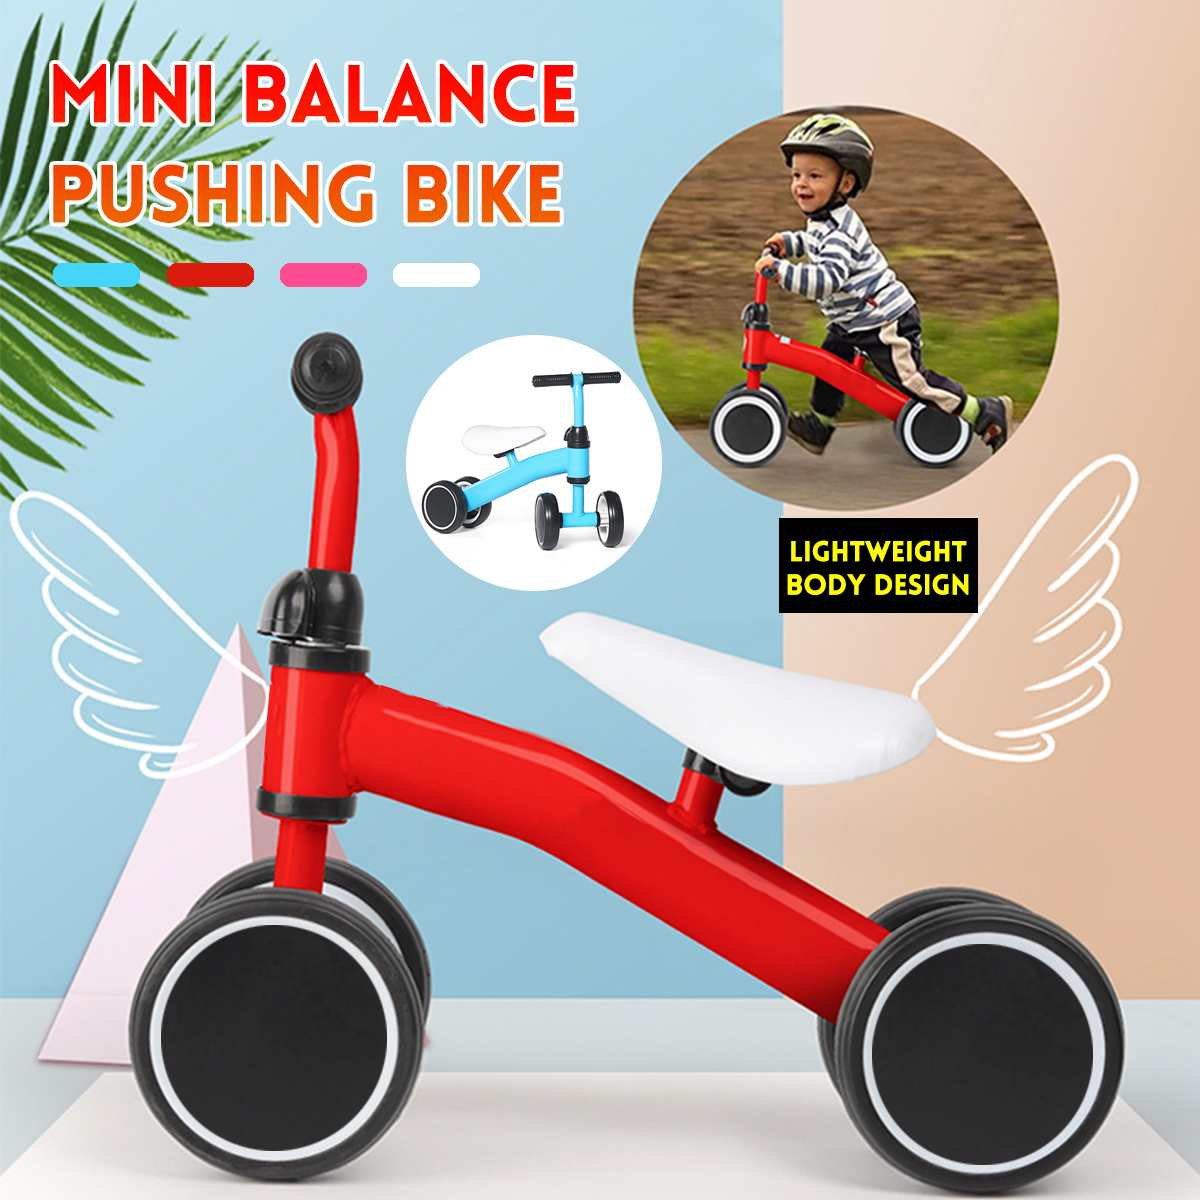 Mini Baby Balance Bike Bicycle Walker Indoor Outdoor Kids Ride on Car Toys Gift for 1-3 years Old Children Learning Walk Scooter